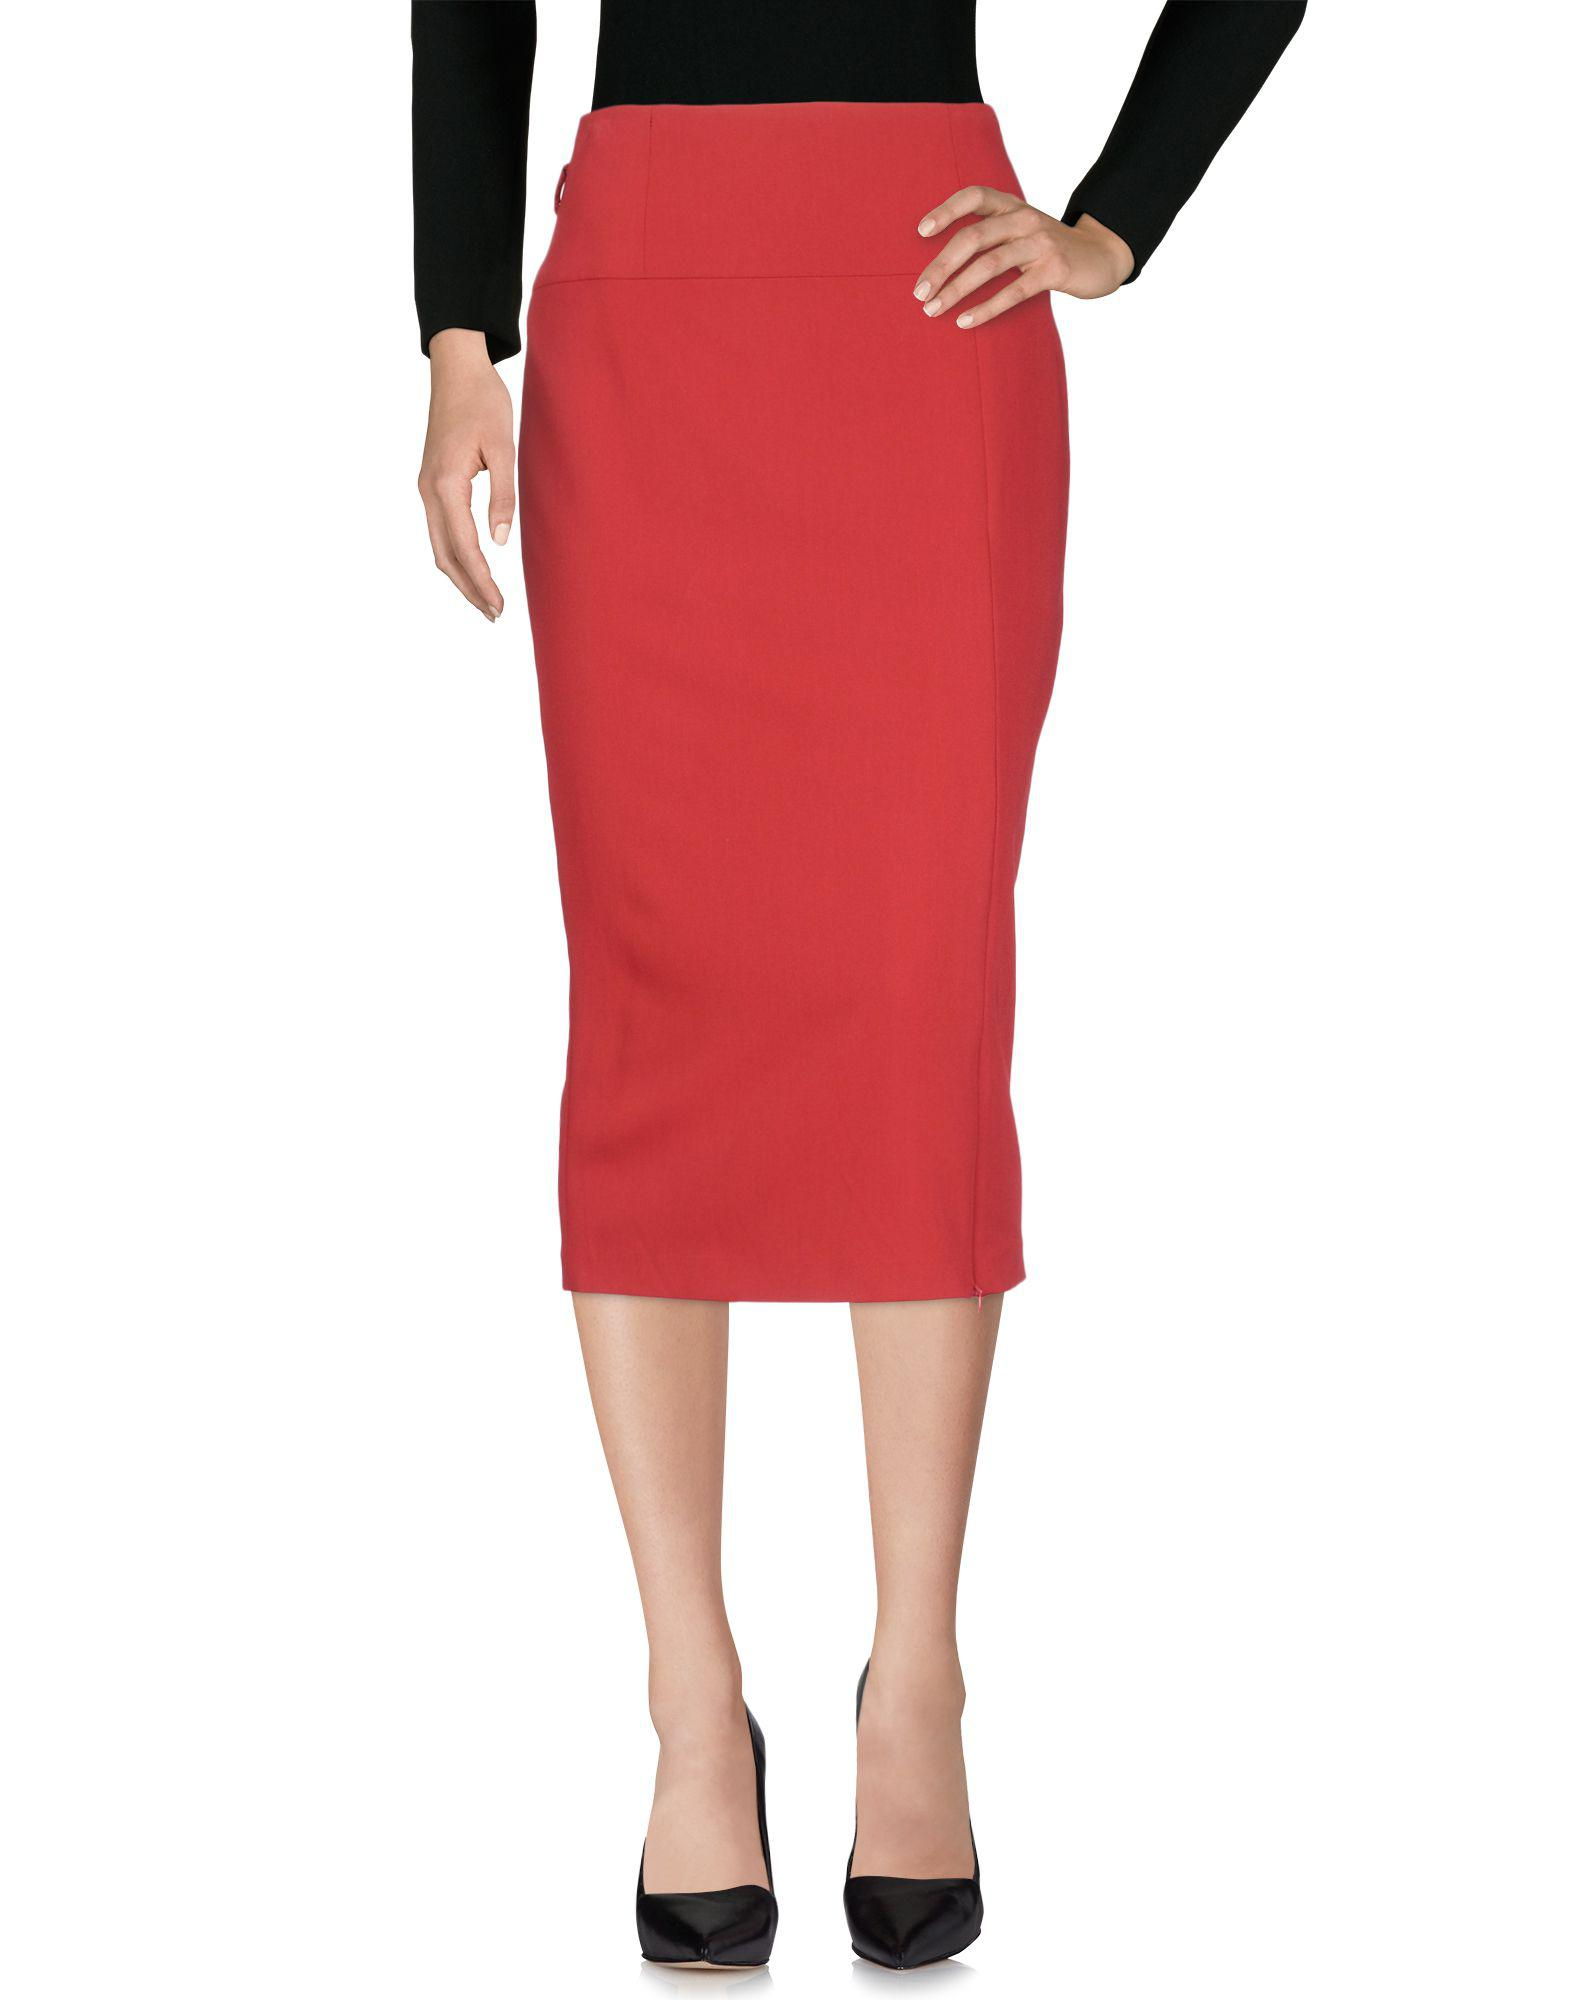 Cheap Enjoy SKIRTS - 3/4 length skirts Guess Buy Cheap 2018 Sale Footlocker Outlet With Paypal Order Online Cheap Factory Outlet euvvd01Z